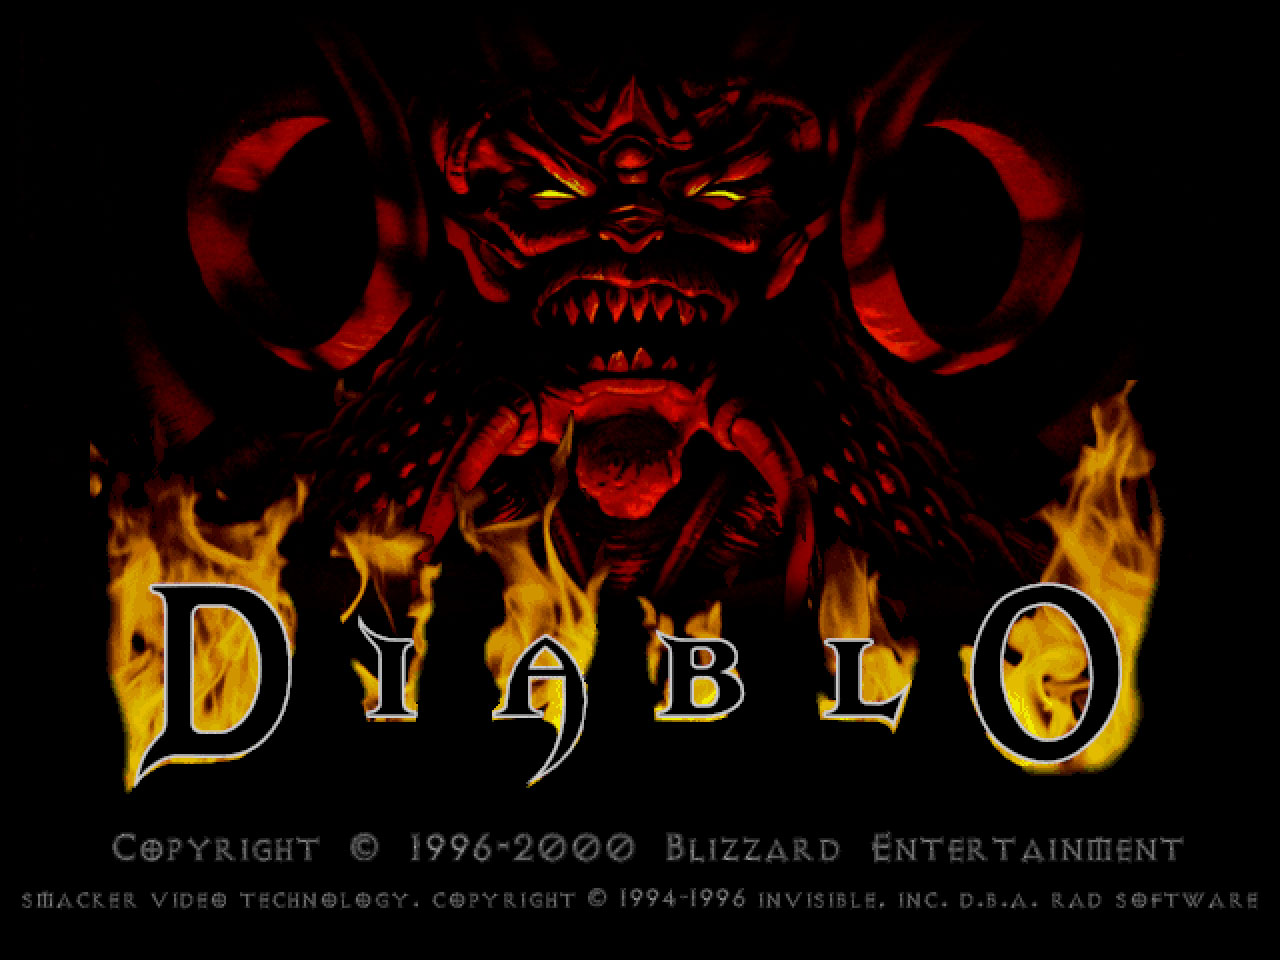 The original Diablo is coming back, recreated in Diablo III